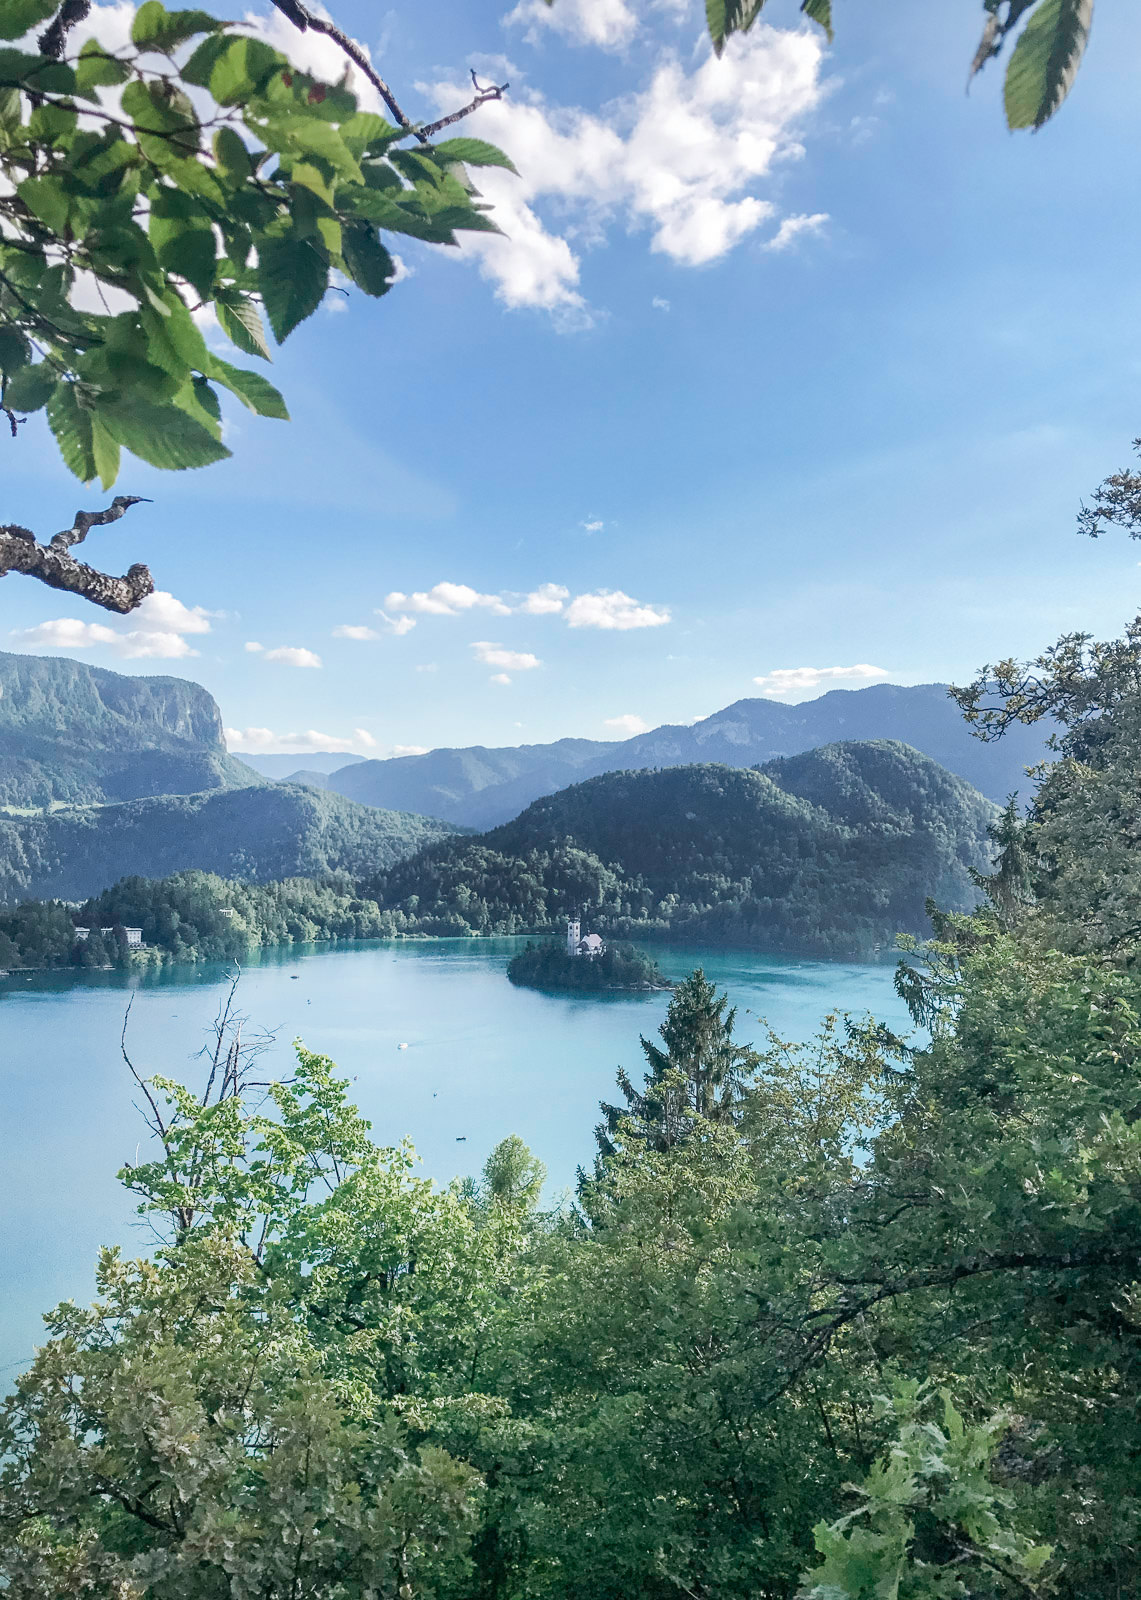 Blog-Mode-And-The-City-Lifestyle-Roadtrip-Europe-Slovenie-Ljubljana-Bled-23